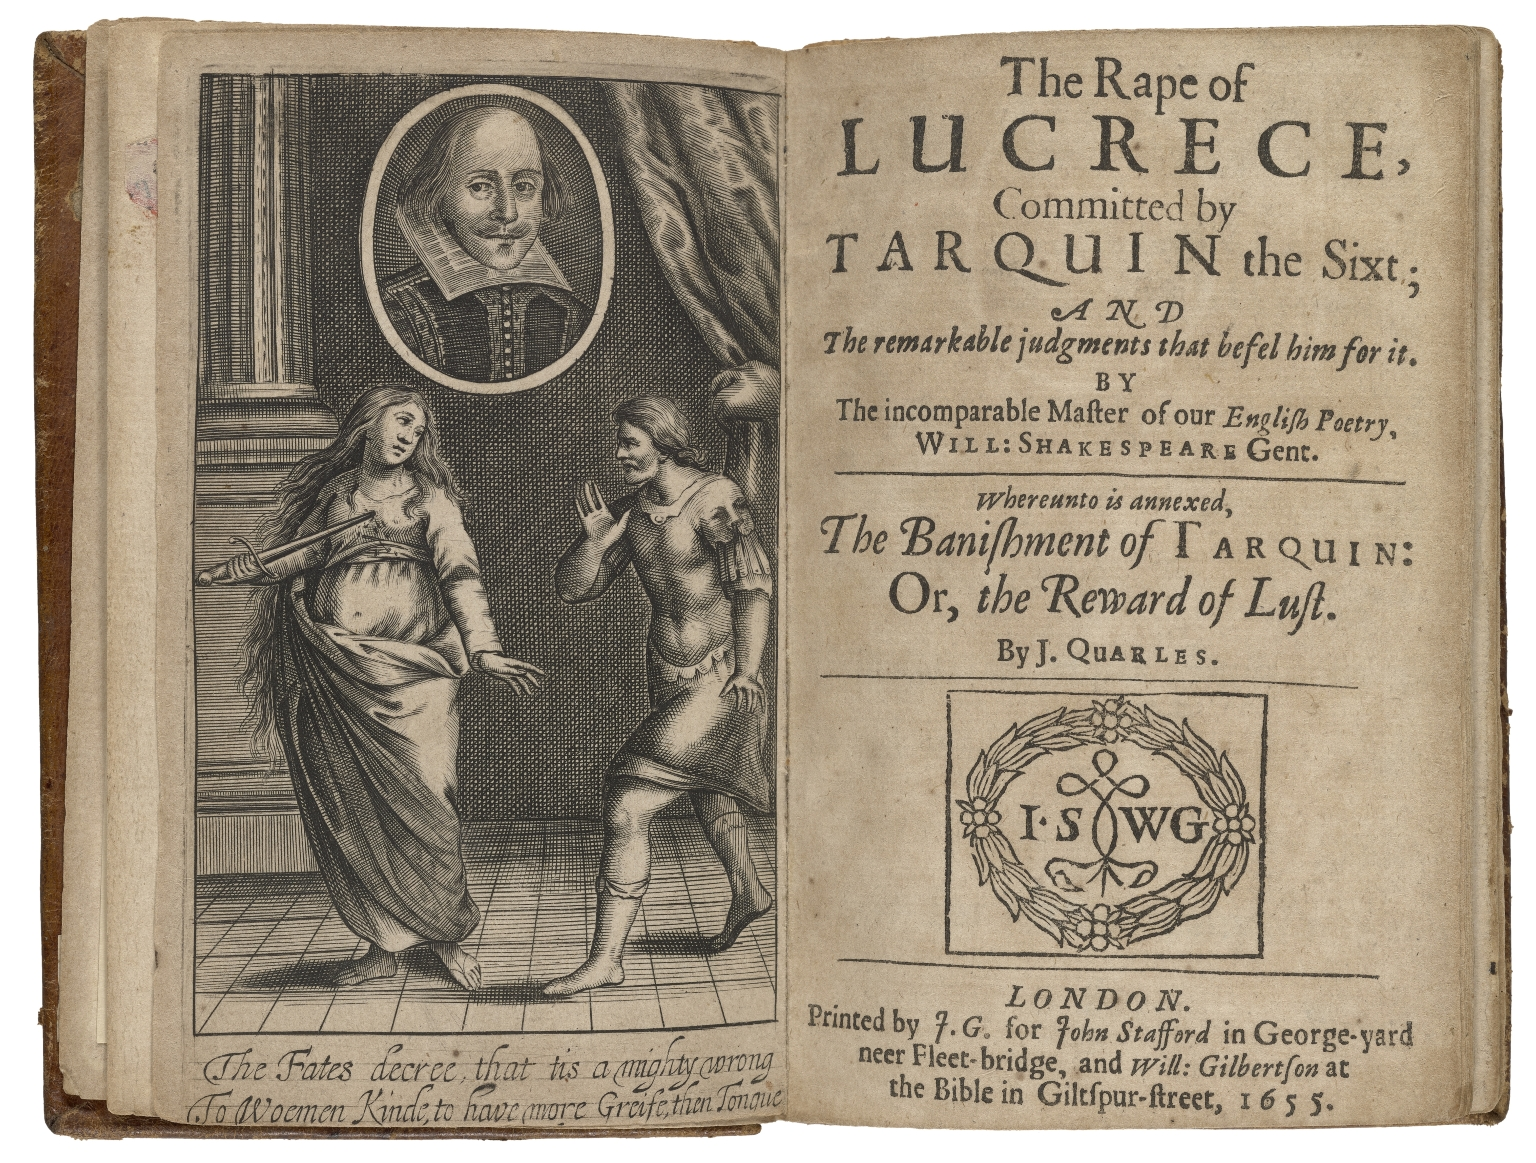 The rape of Lucrece : committed by Tarquin the Sixt; and the remarkable judgments that befel him for it. By the incomparable master of our English poetry, Will: Shakespeare Gent. Whereunto is annexed, The banishment of Tarquin: or, the reward of lust. By J. Quarles.